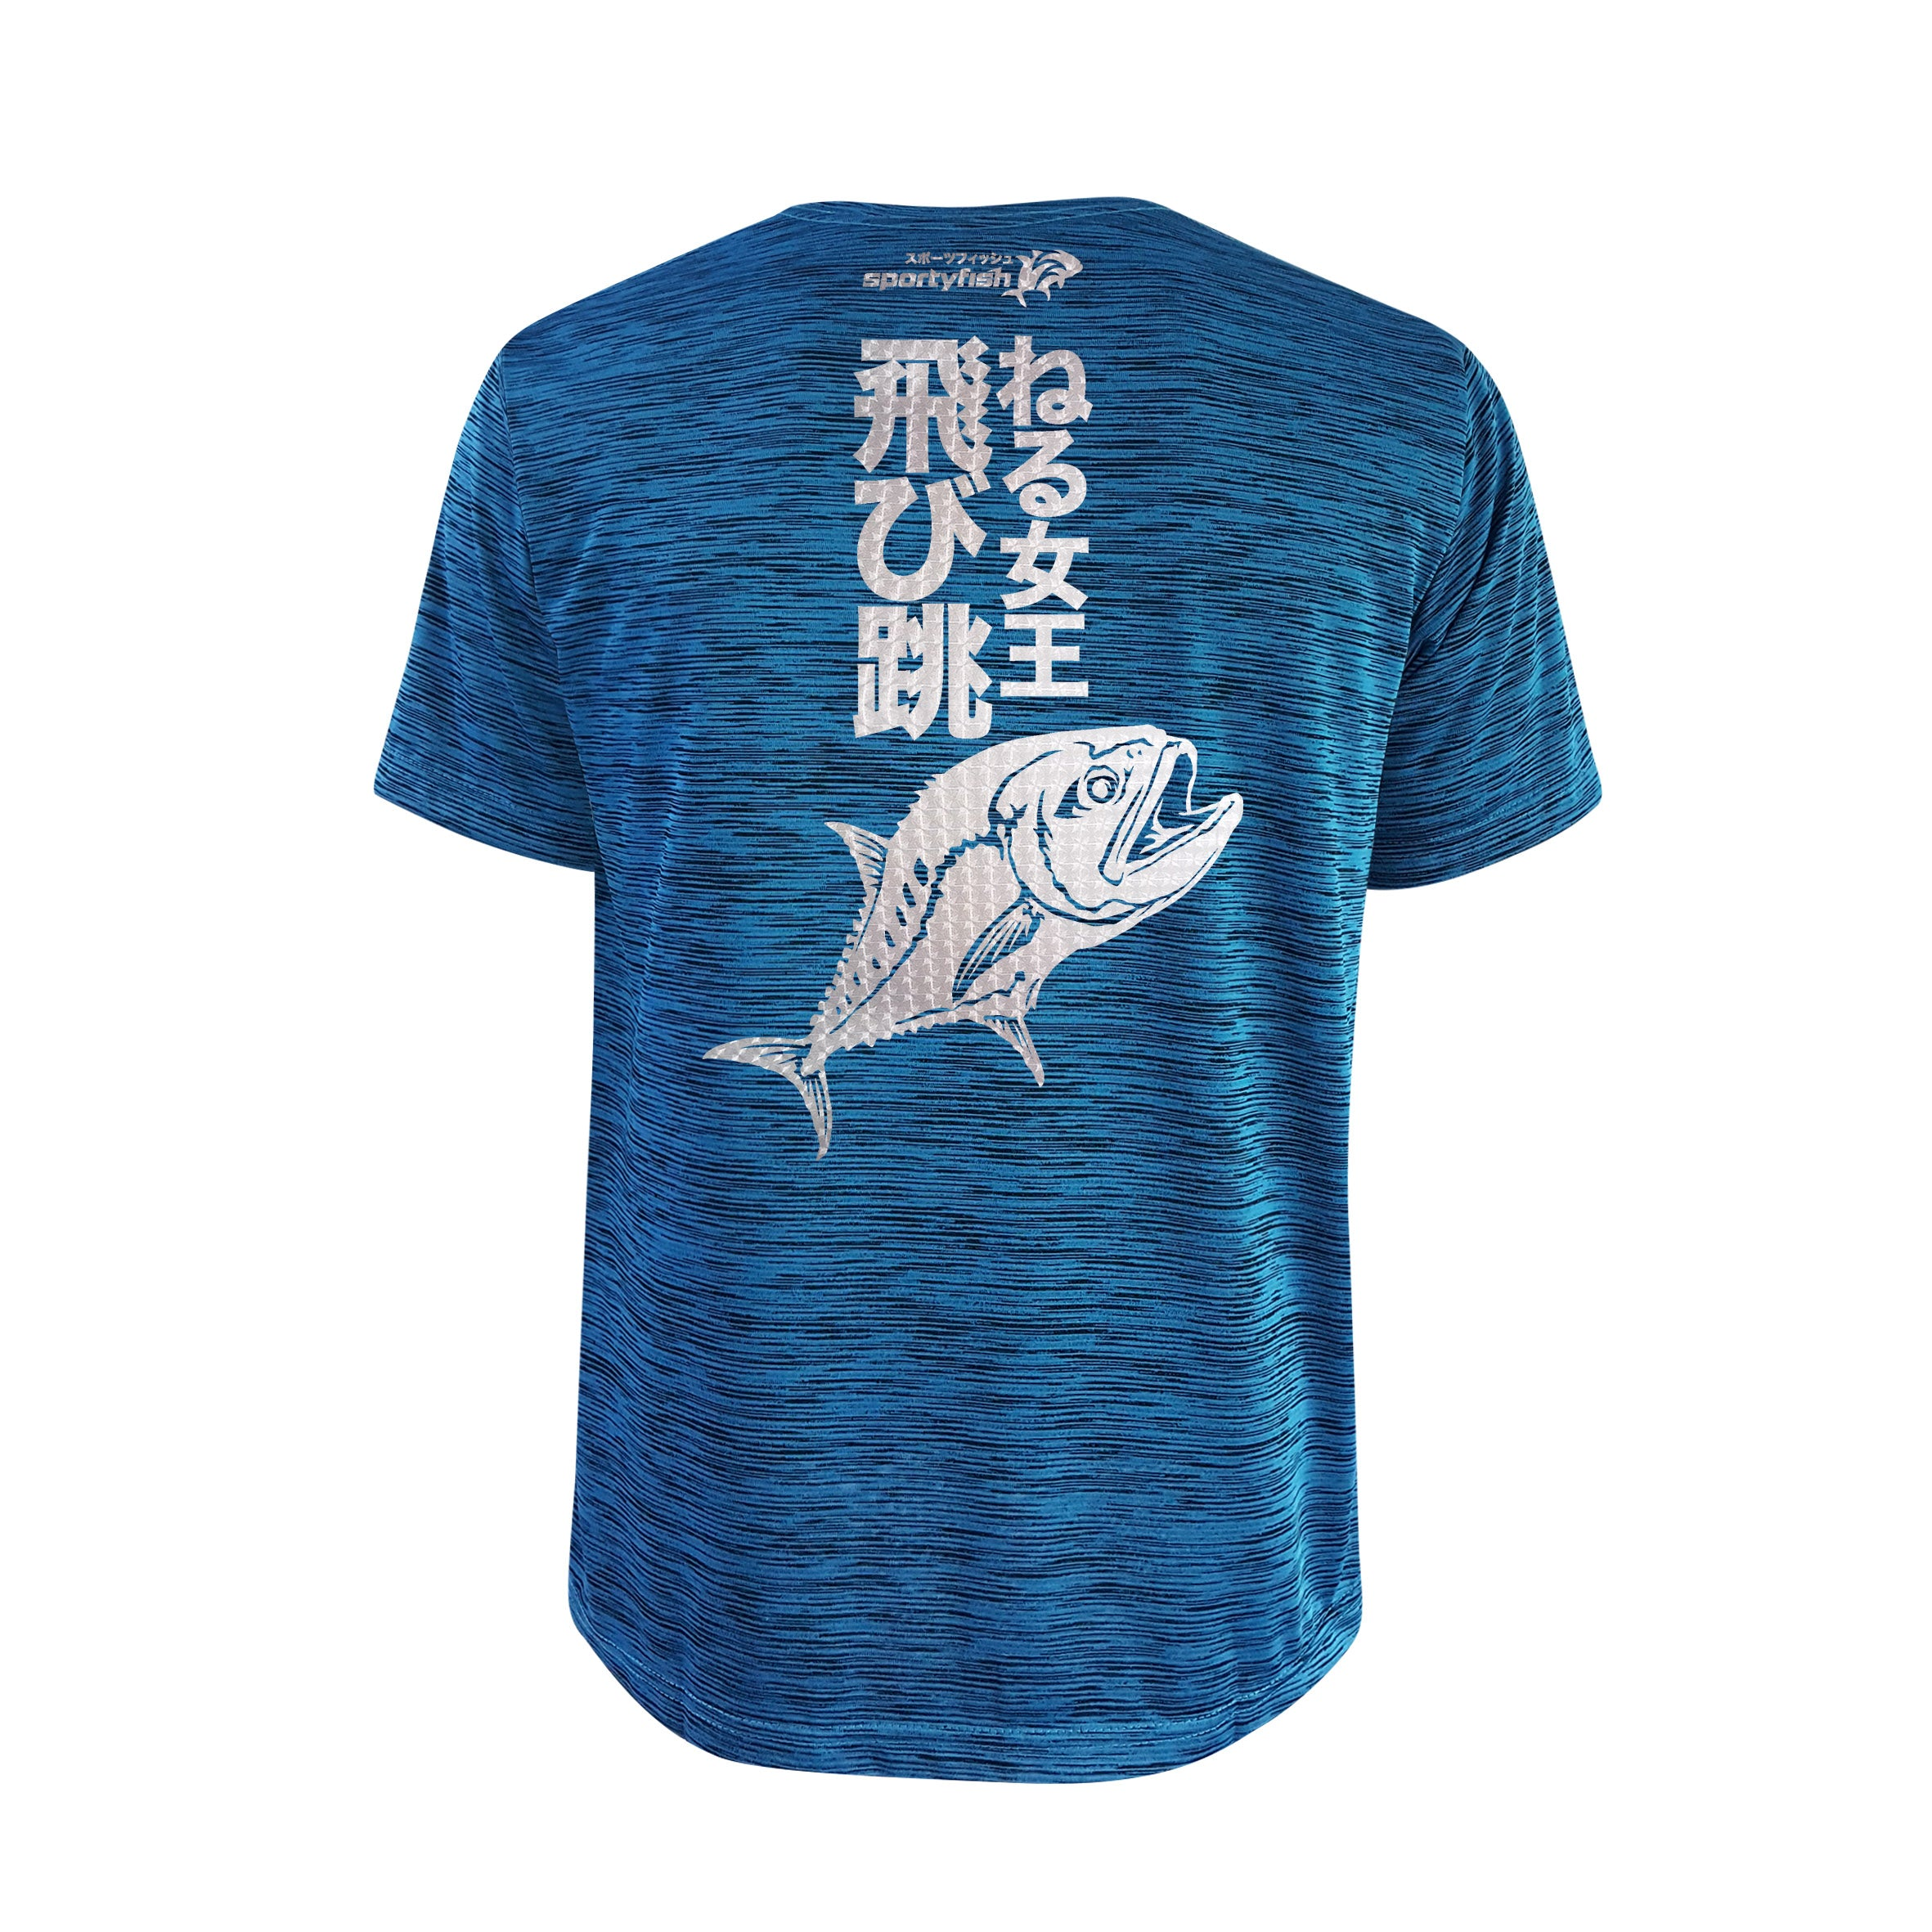 Bold Series Turquoise T-shirt(SS): The Queenfish(Leaping Queen)(In Japanese Words)